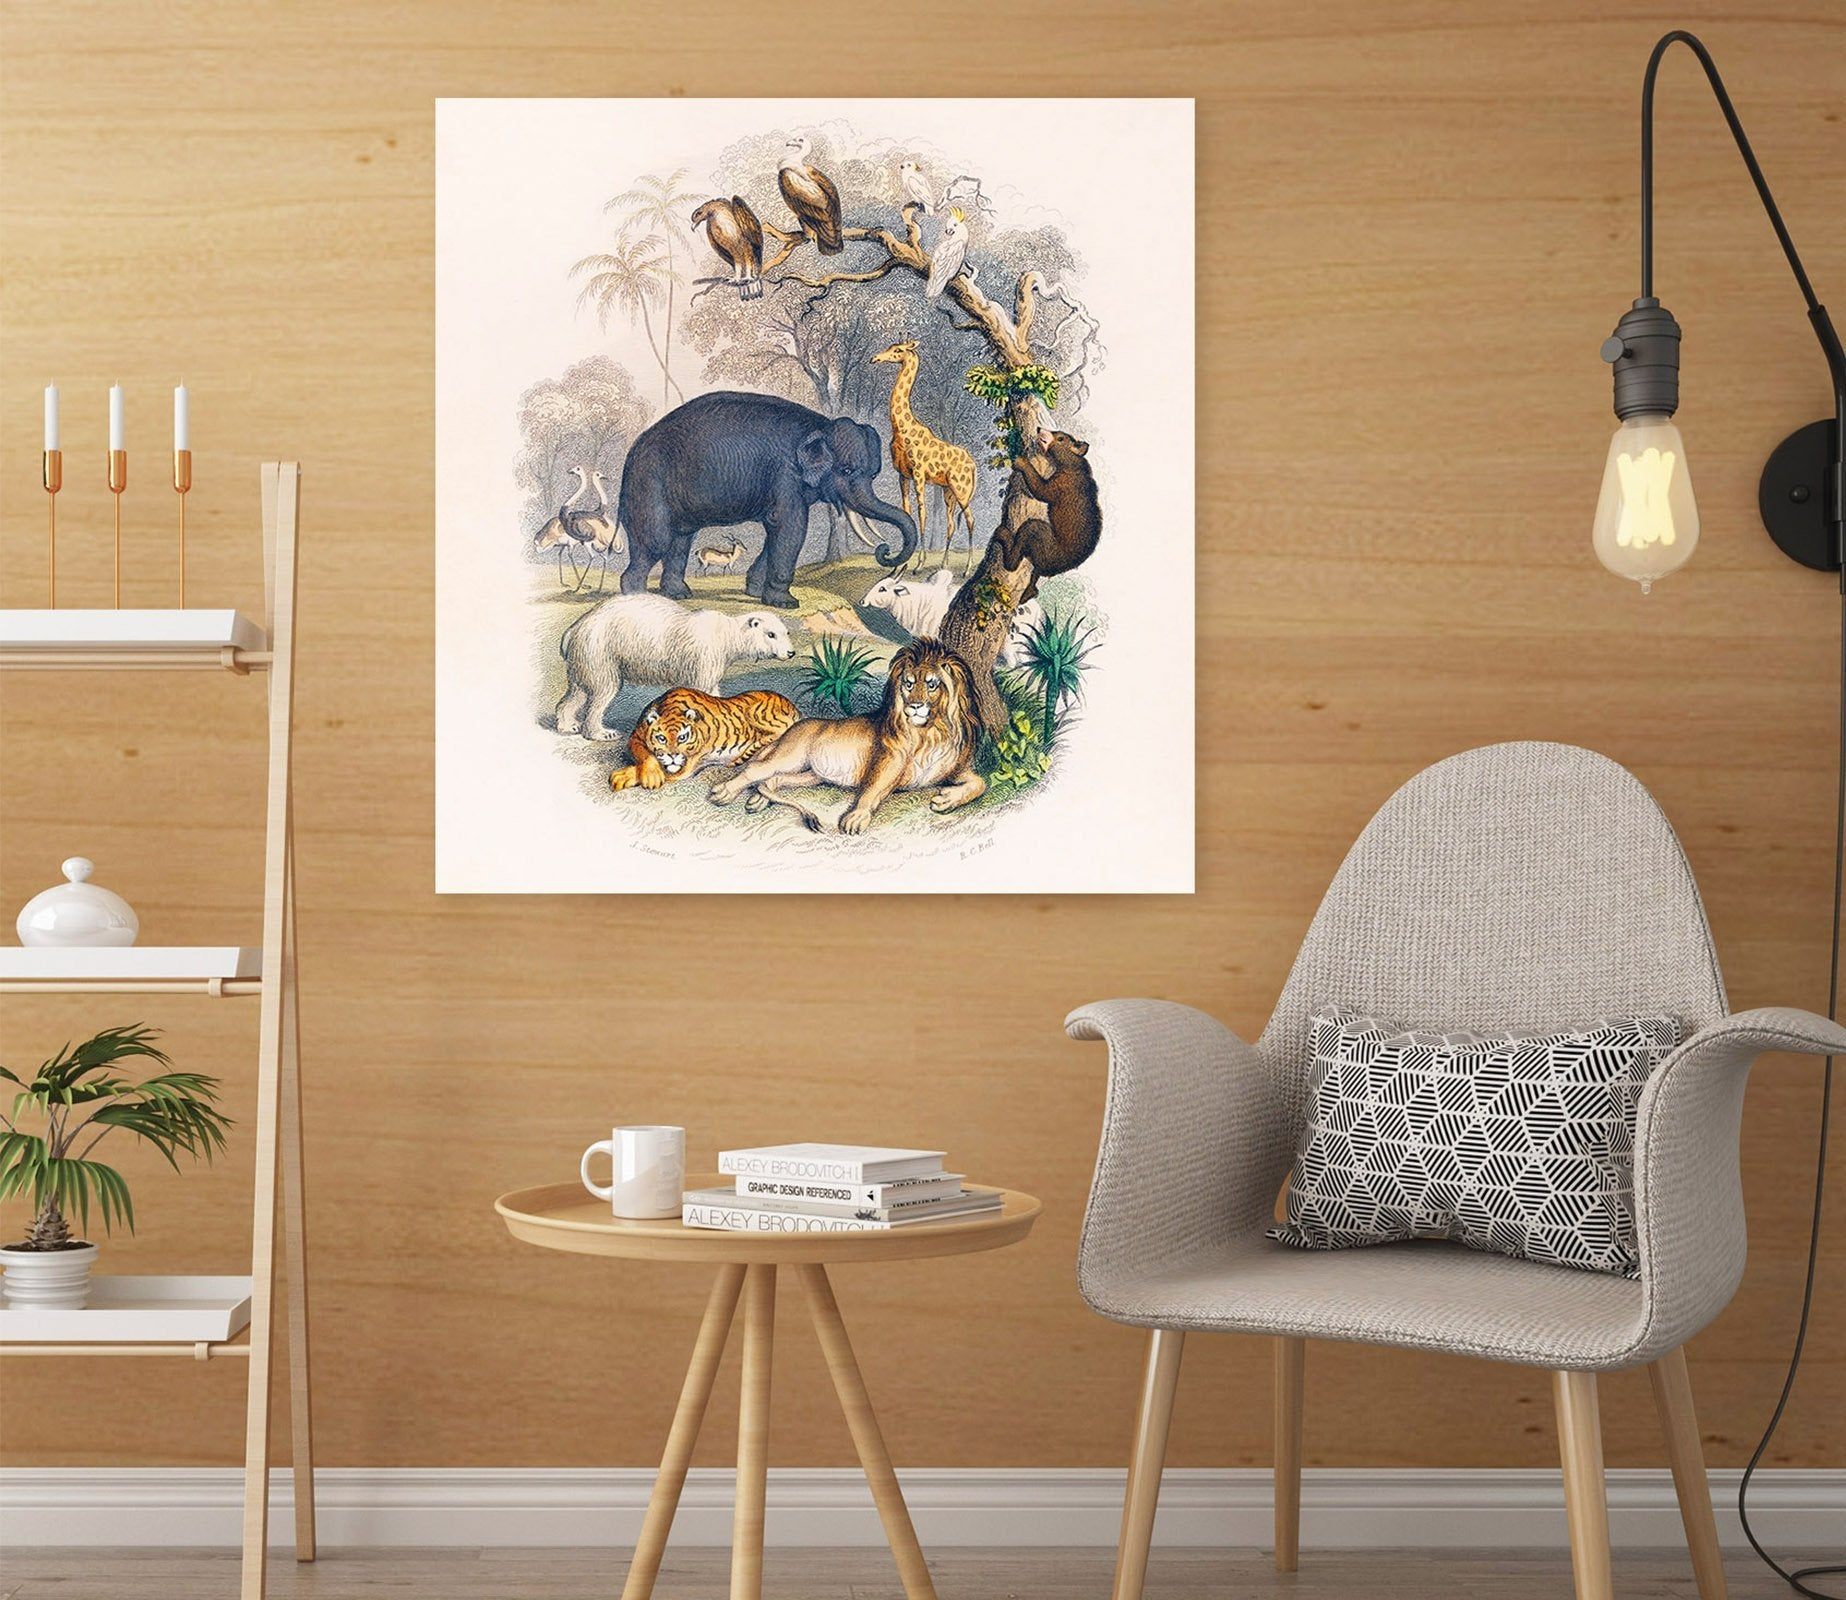 3D Zoo 138 Animal Wall Stickers